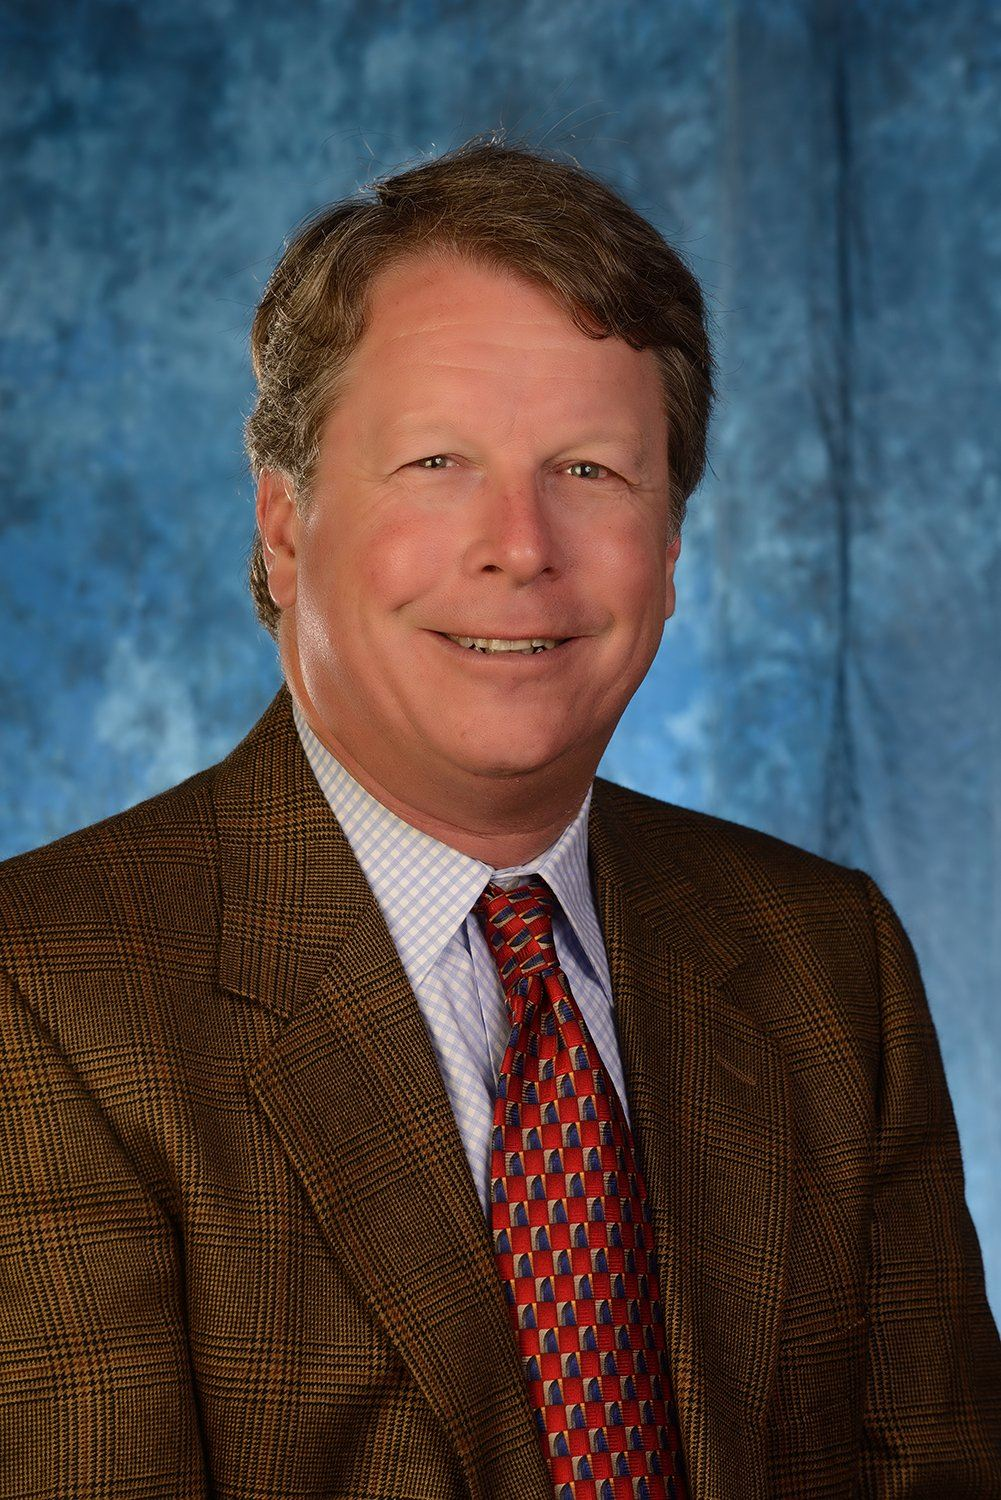 Michael Novak, MD